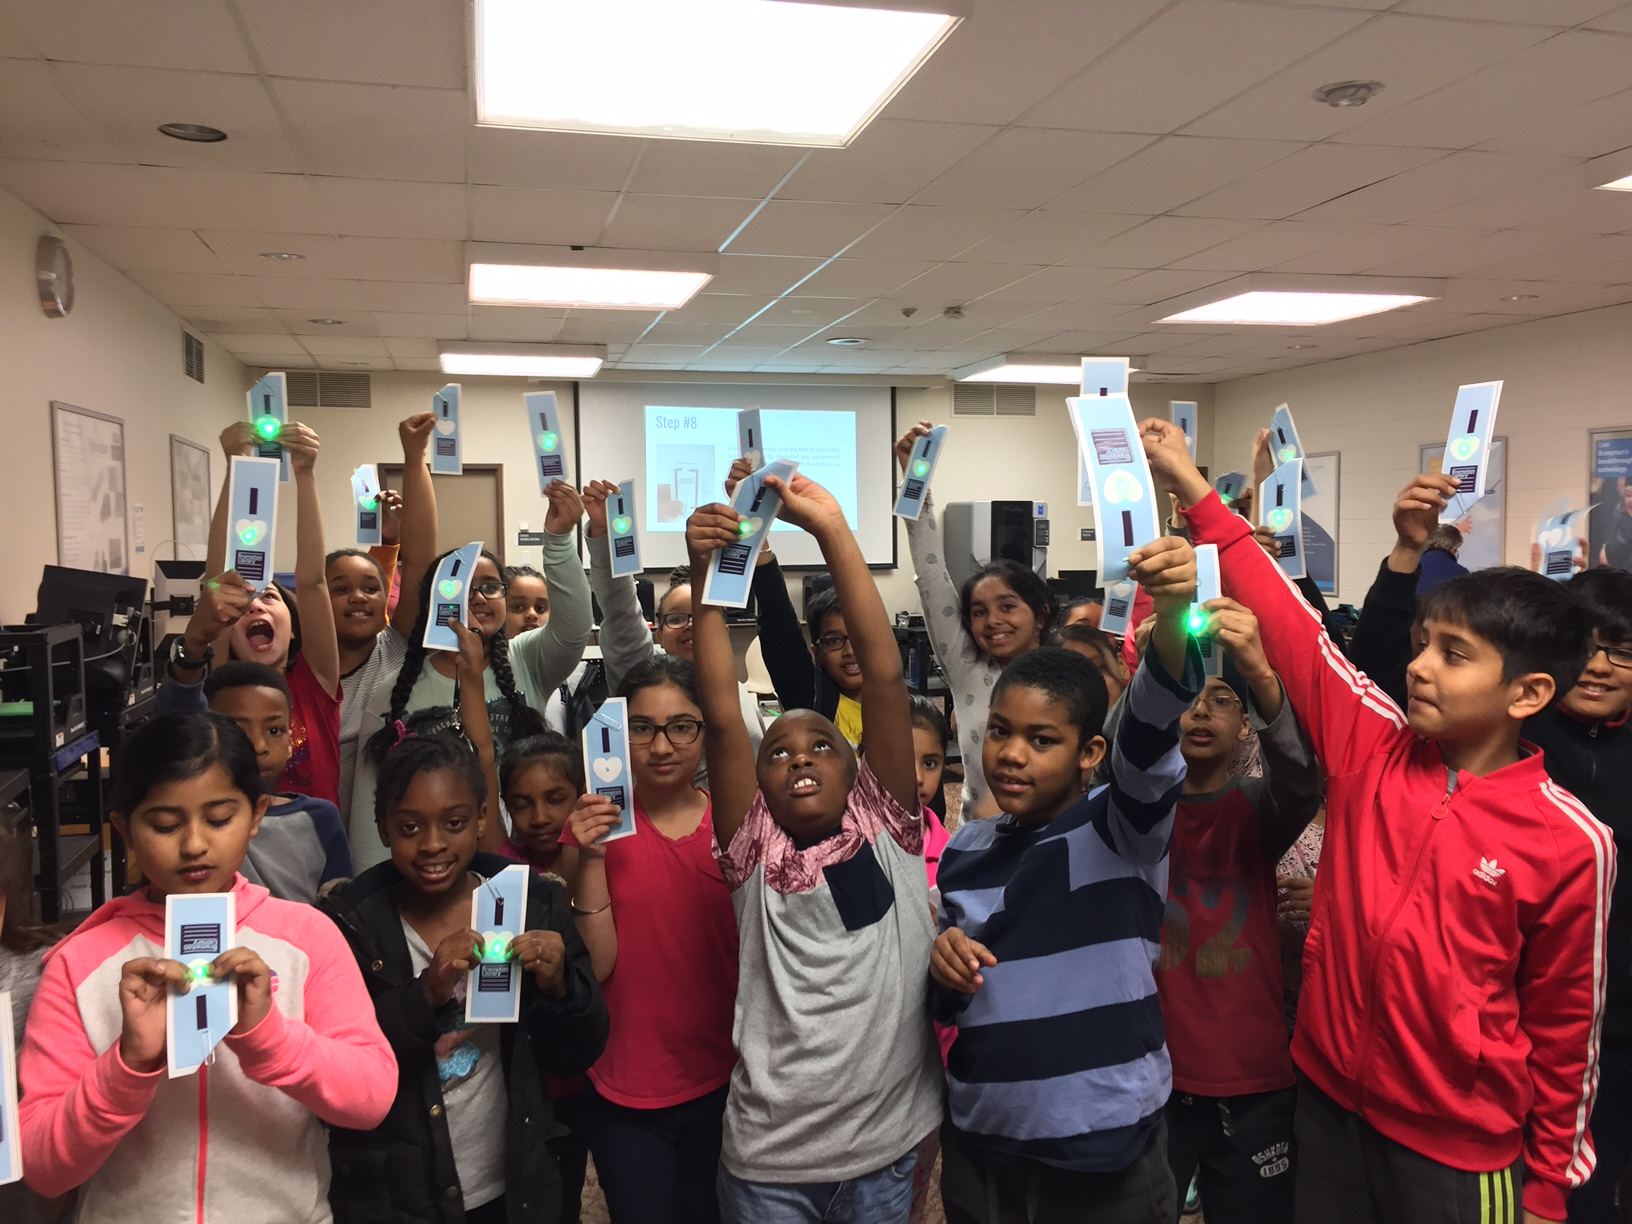 Students from Queens Street Public School holding up Brampton Library bookmarks